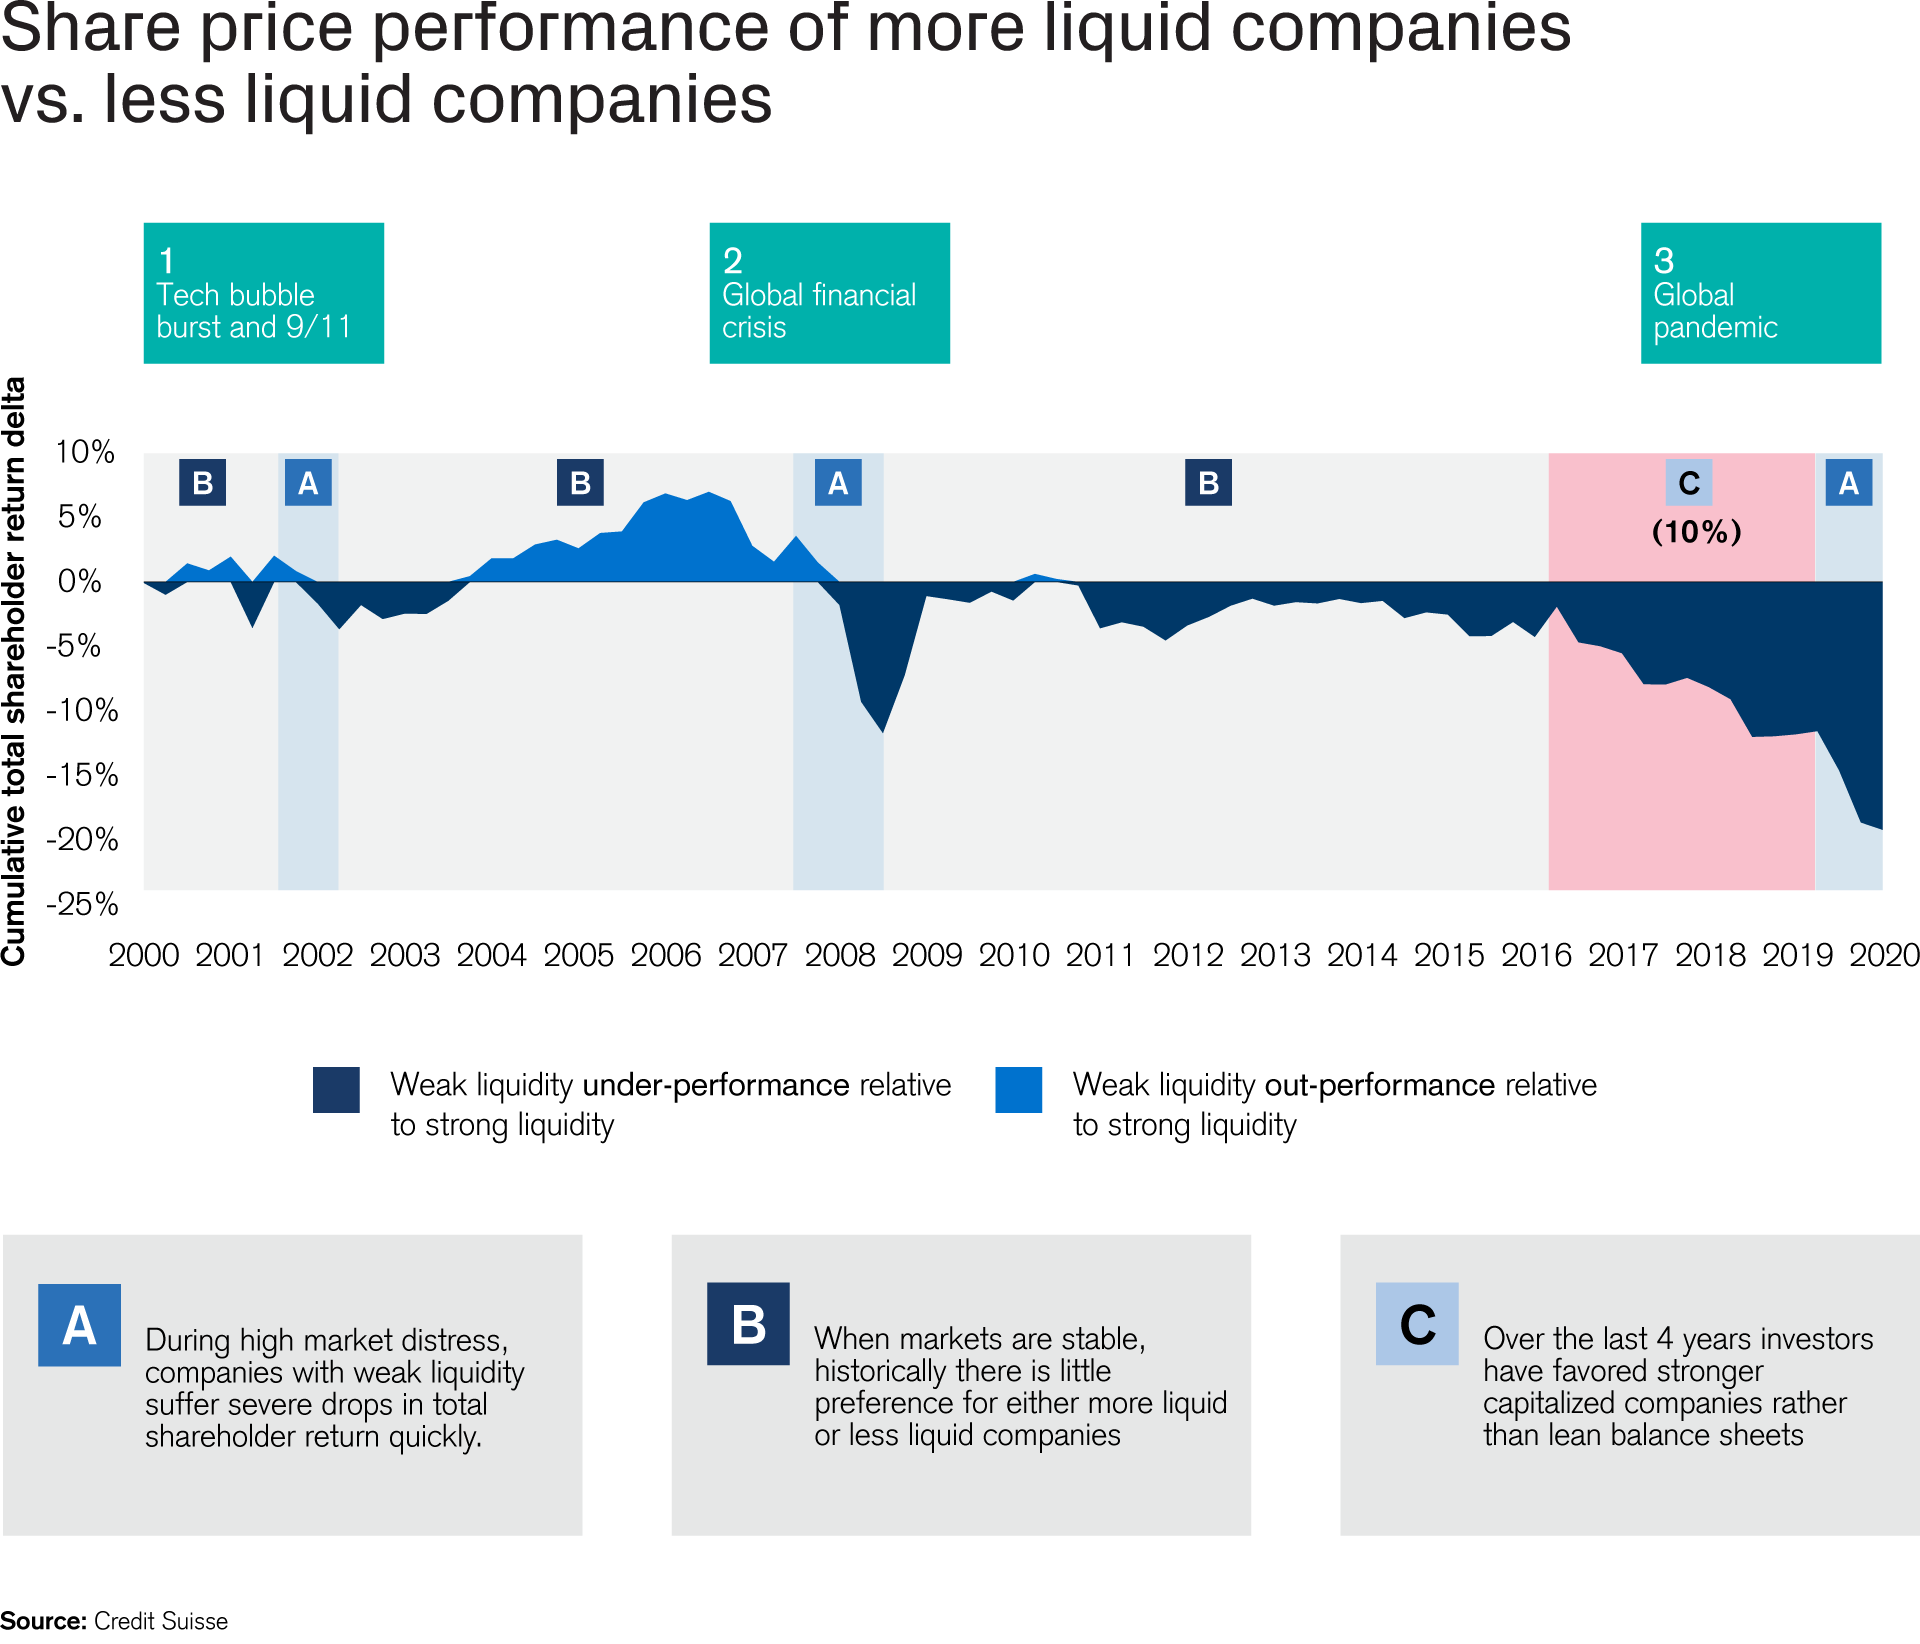 Share price performance of more liquid companies vs. less liquid companies